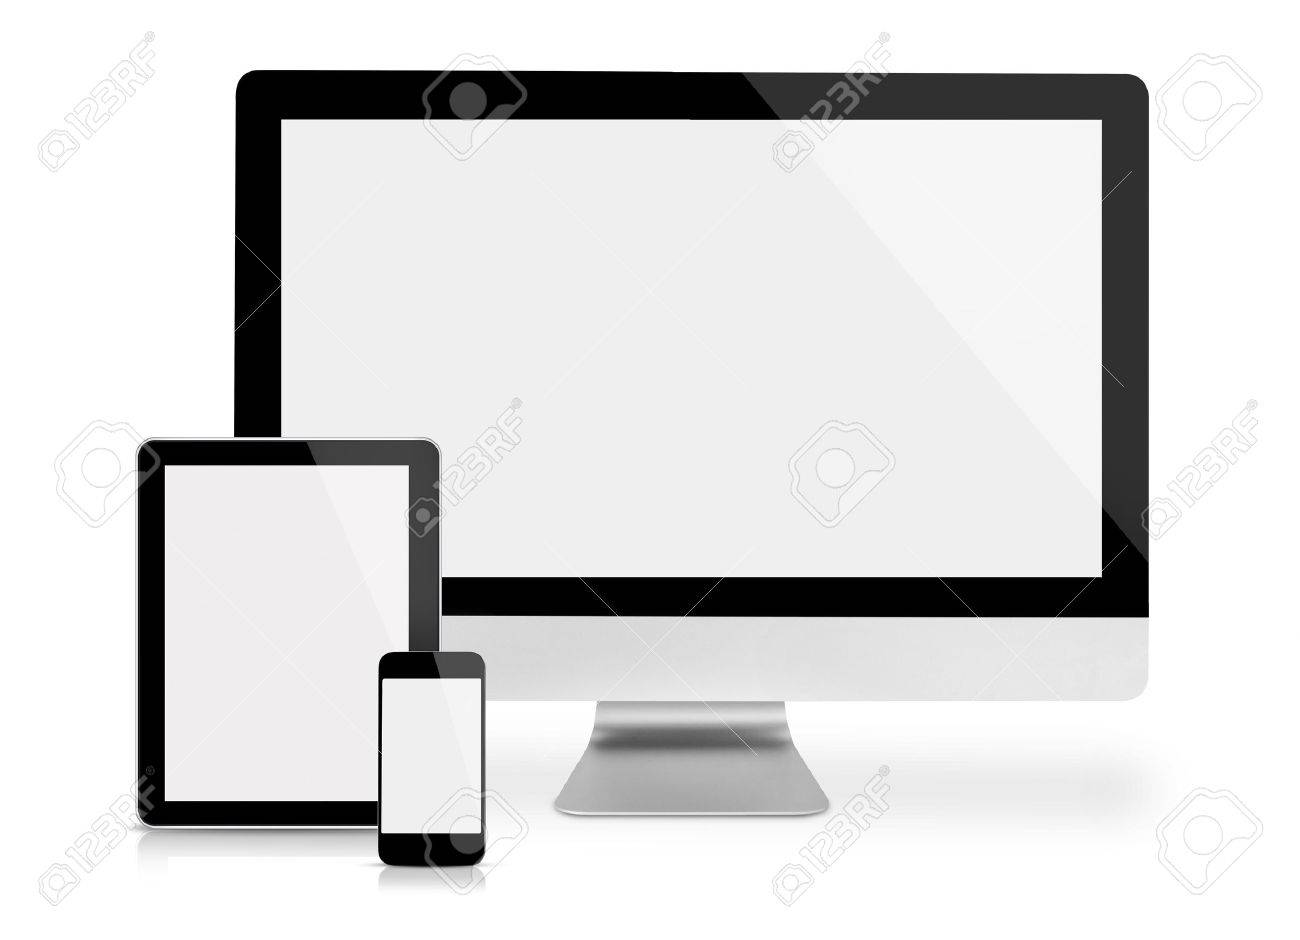 Computer monitor, tablet and phone, frontal view, isolated on white - 36237327